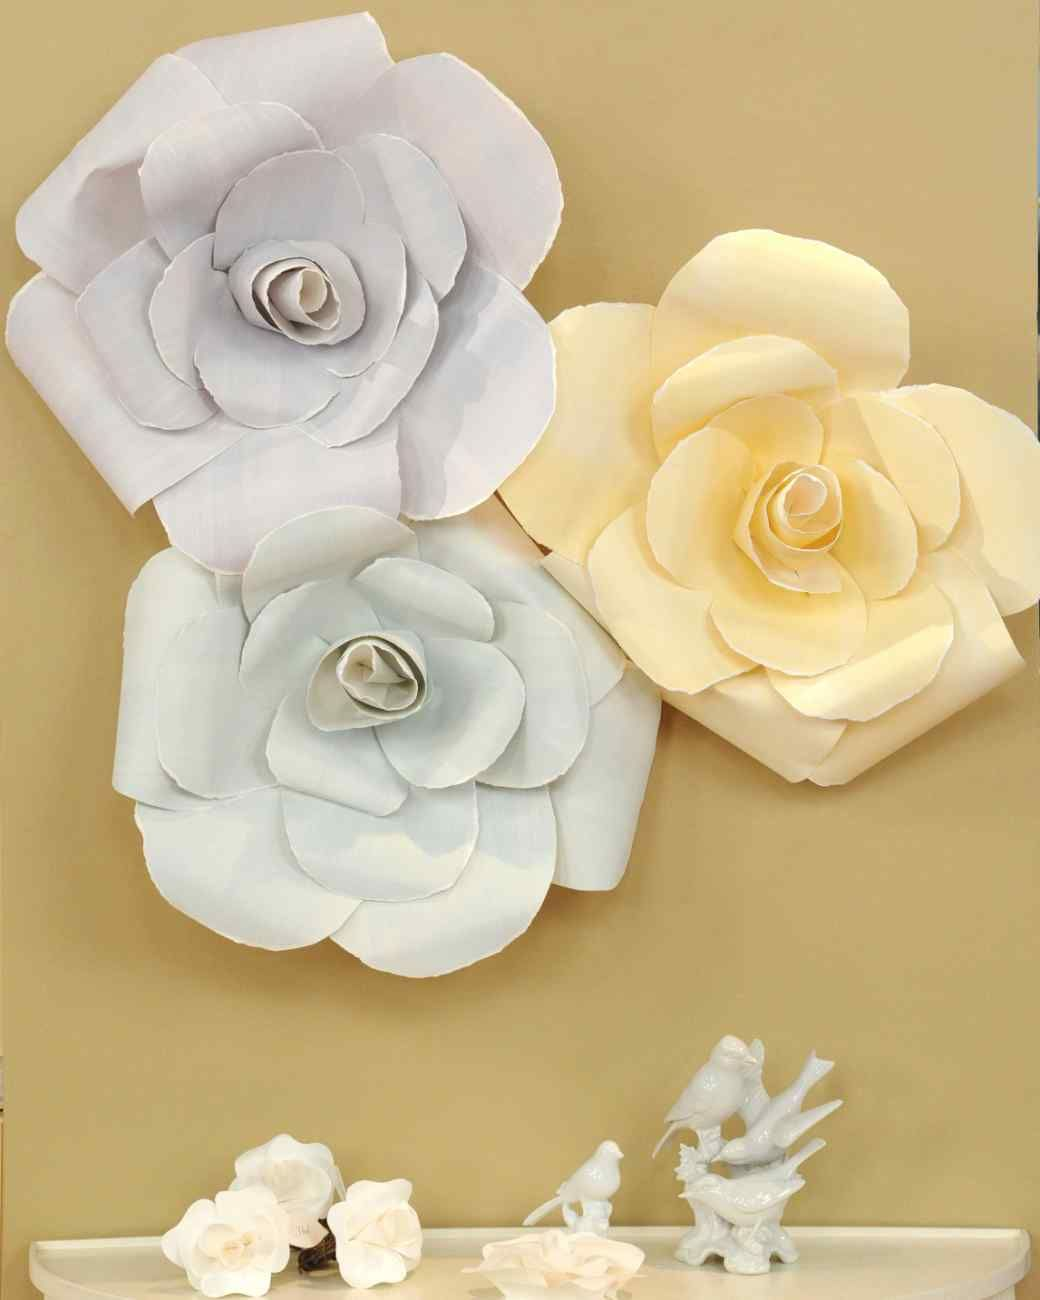 Rose-Inspired Recipes, Crafts, and Decor | Paper roses, Craft and ...